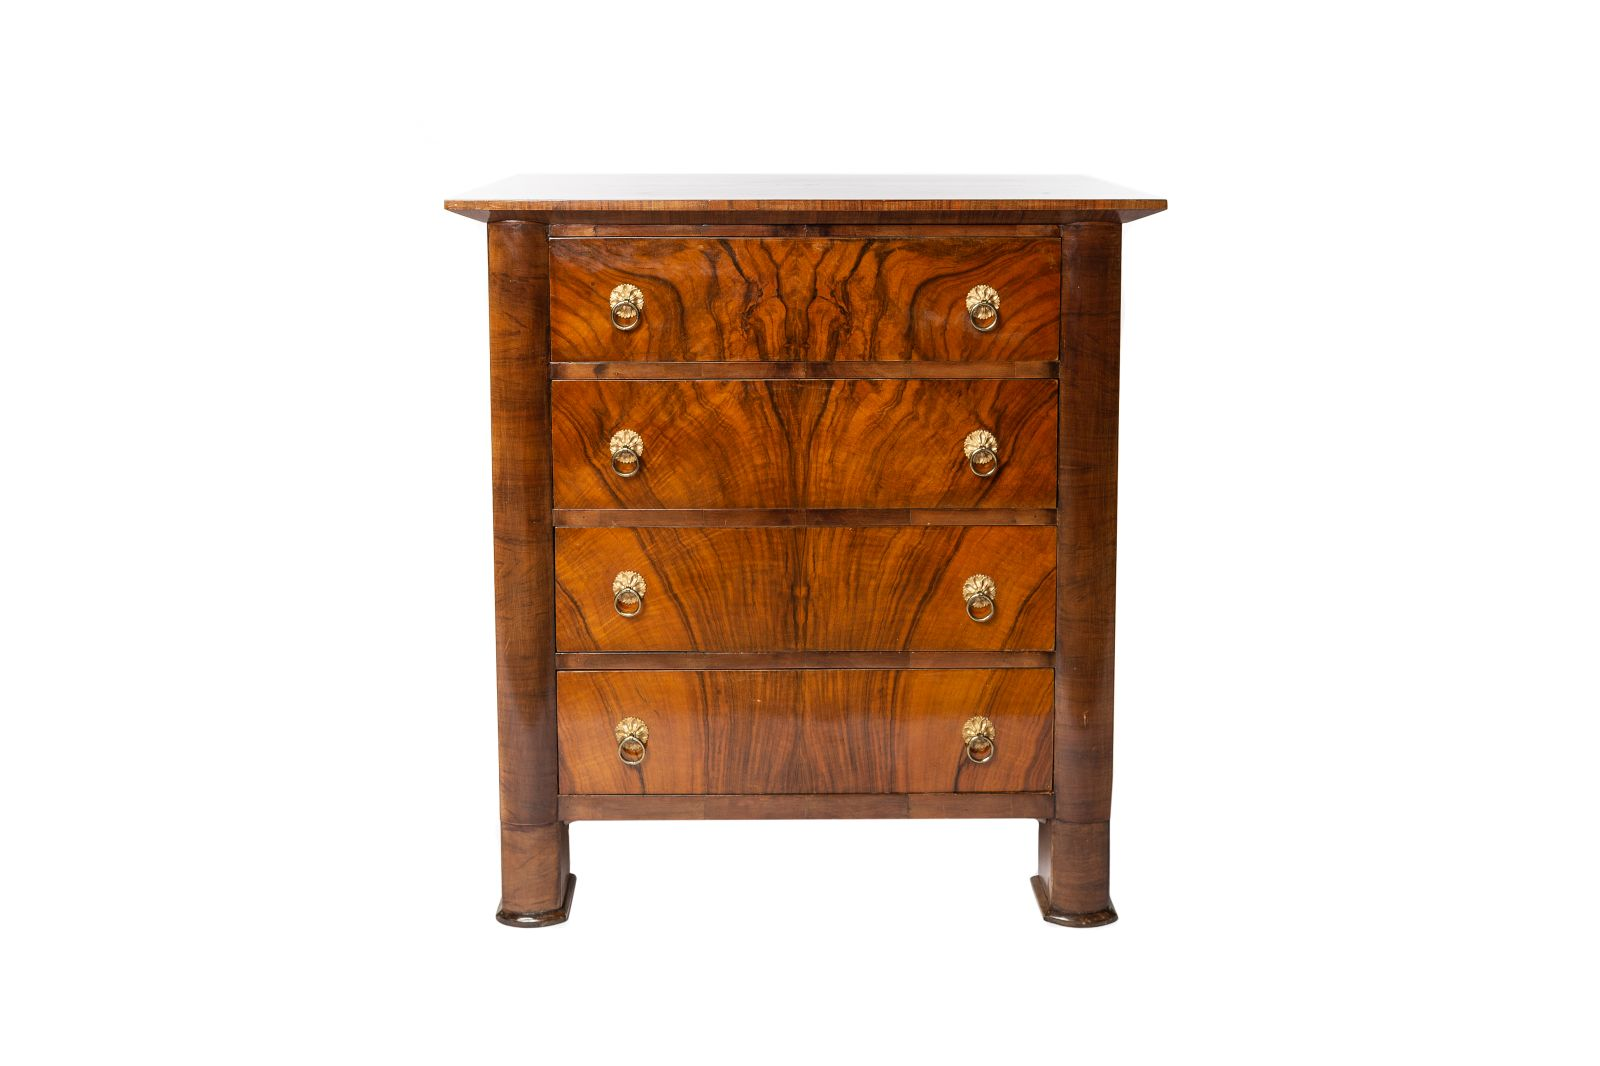 #56 Late Biedermeier chest of drawers, Vienna 1845 | Spätbiedermeier Kommode,  Wien 1845 Image